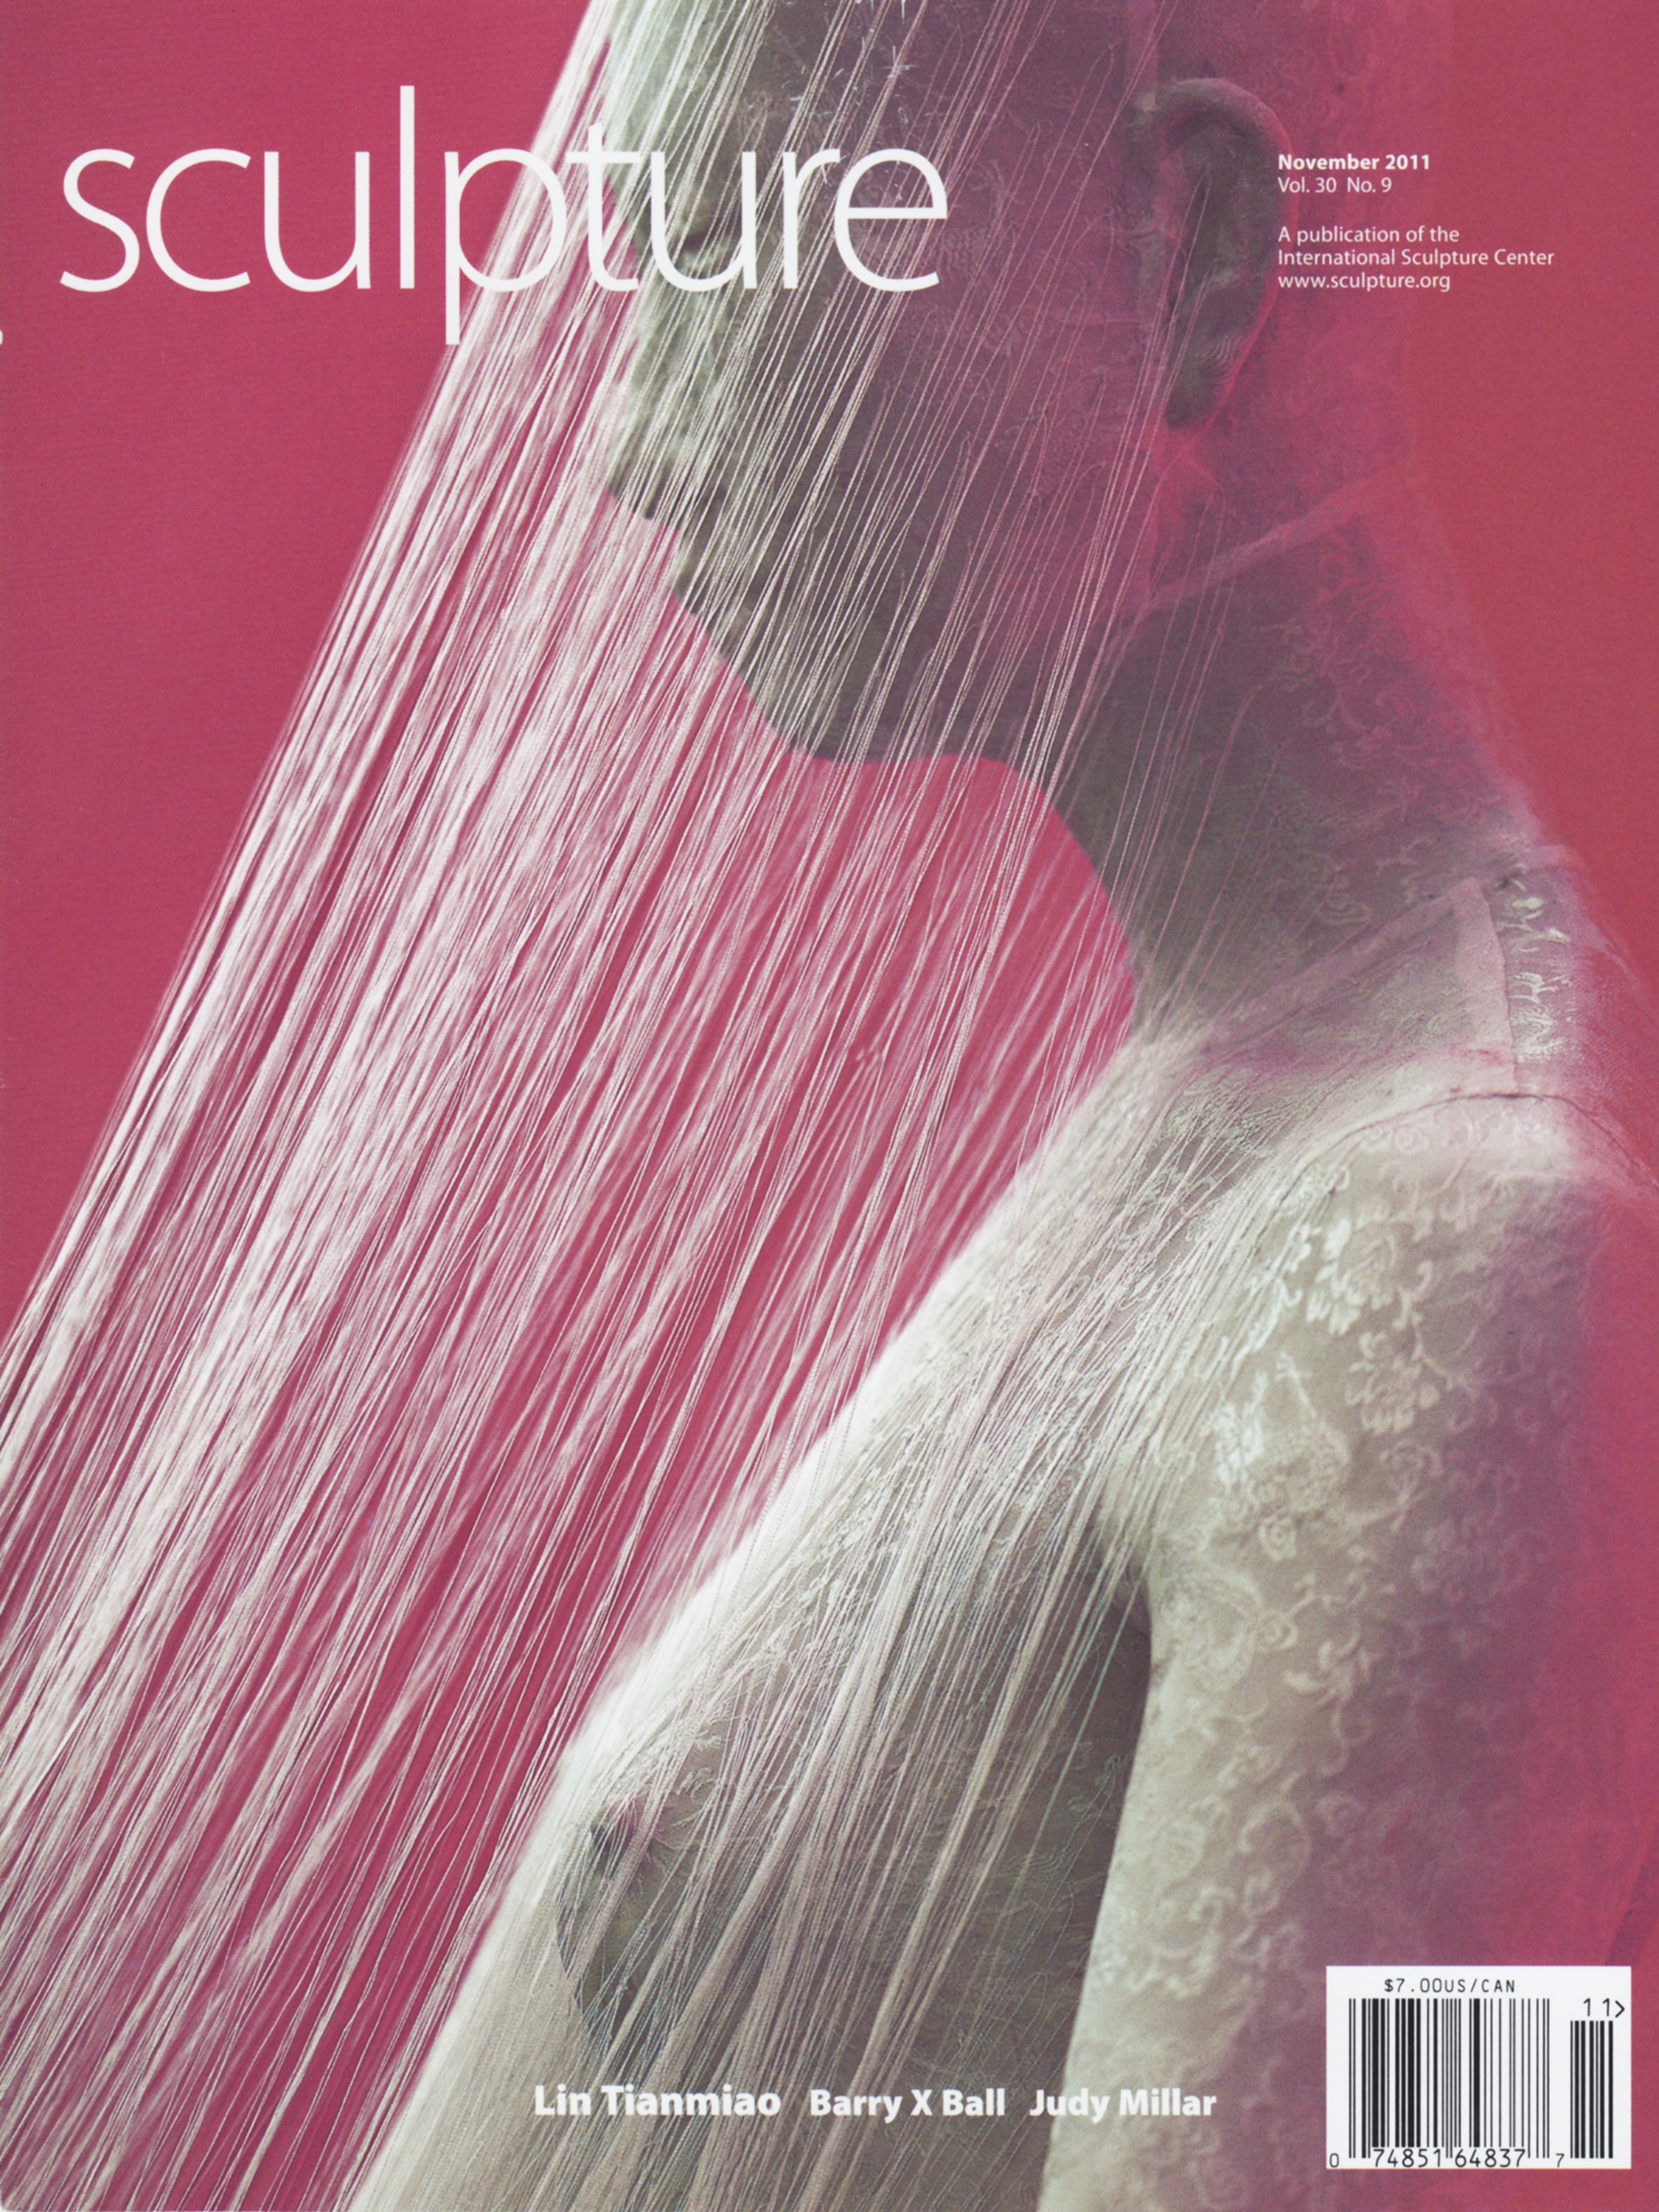 ohmi_sculpture_nov2011_cover.jpg